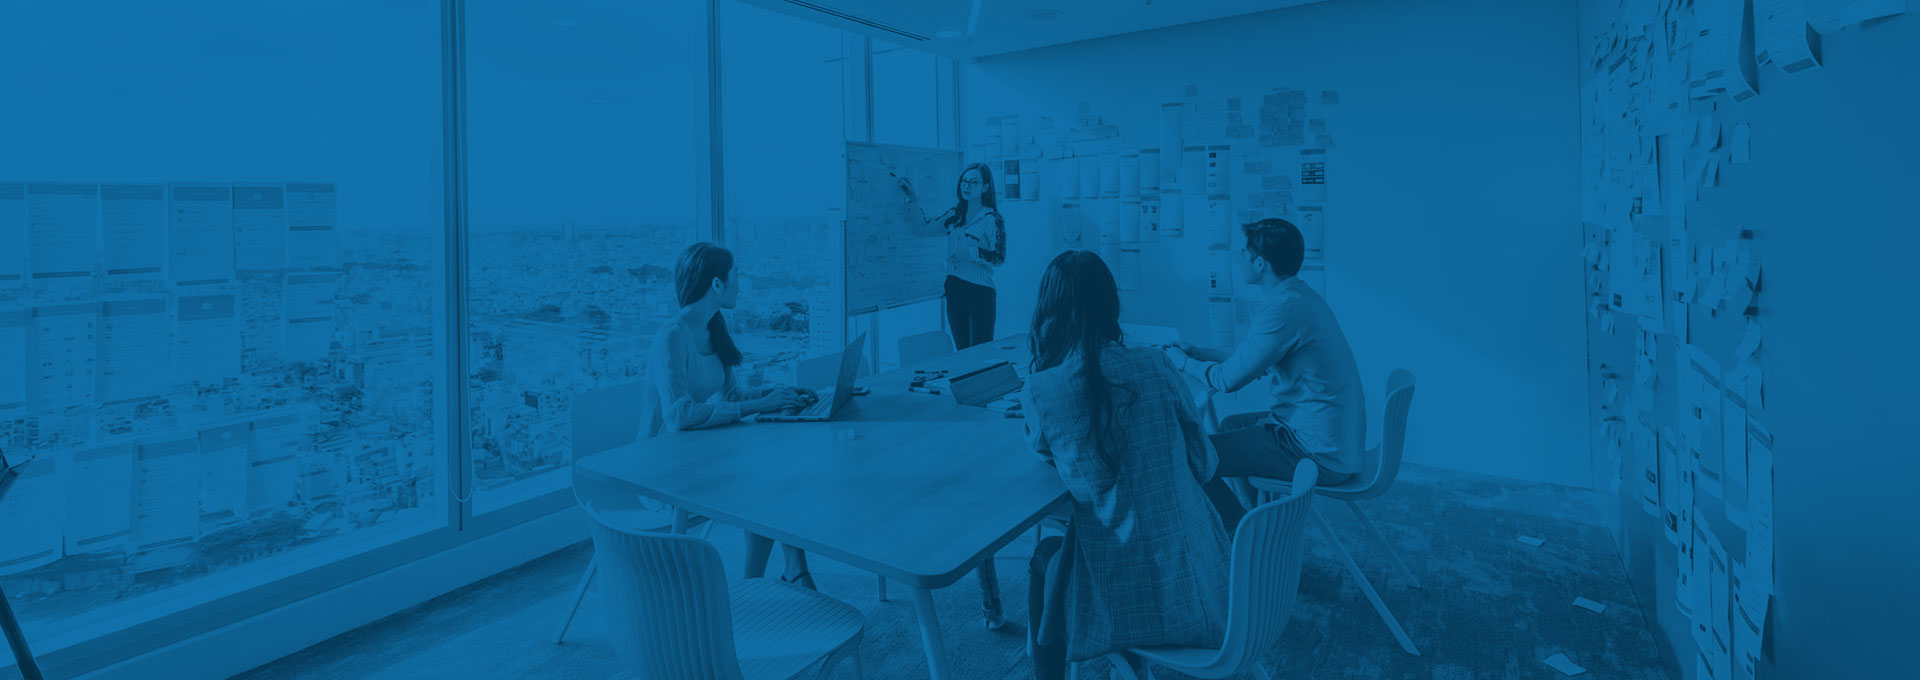 6 Ways to Keep Employees Engaged in Building a Sustainable Business